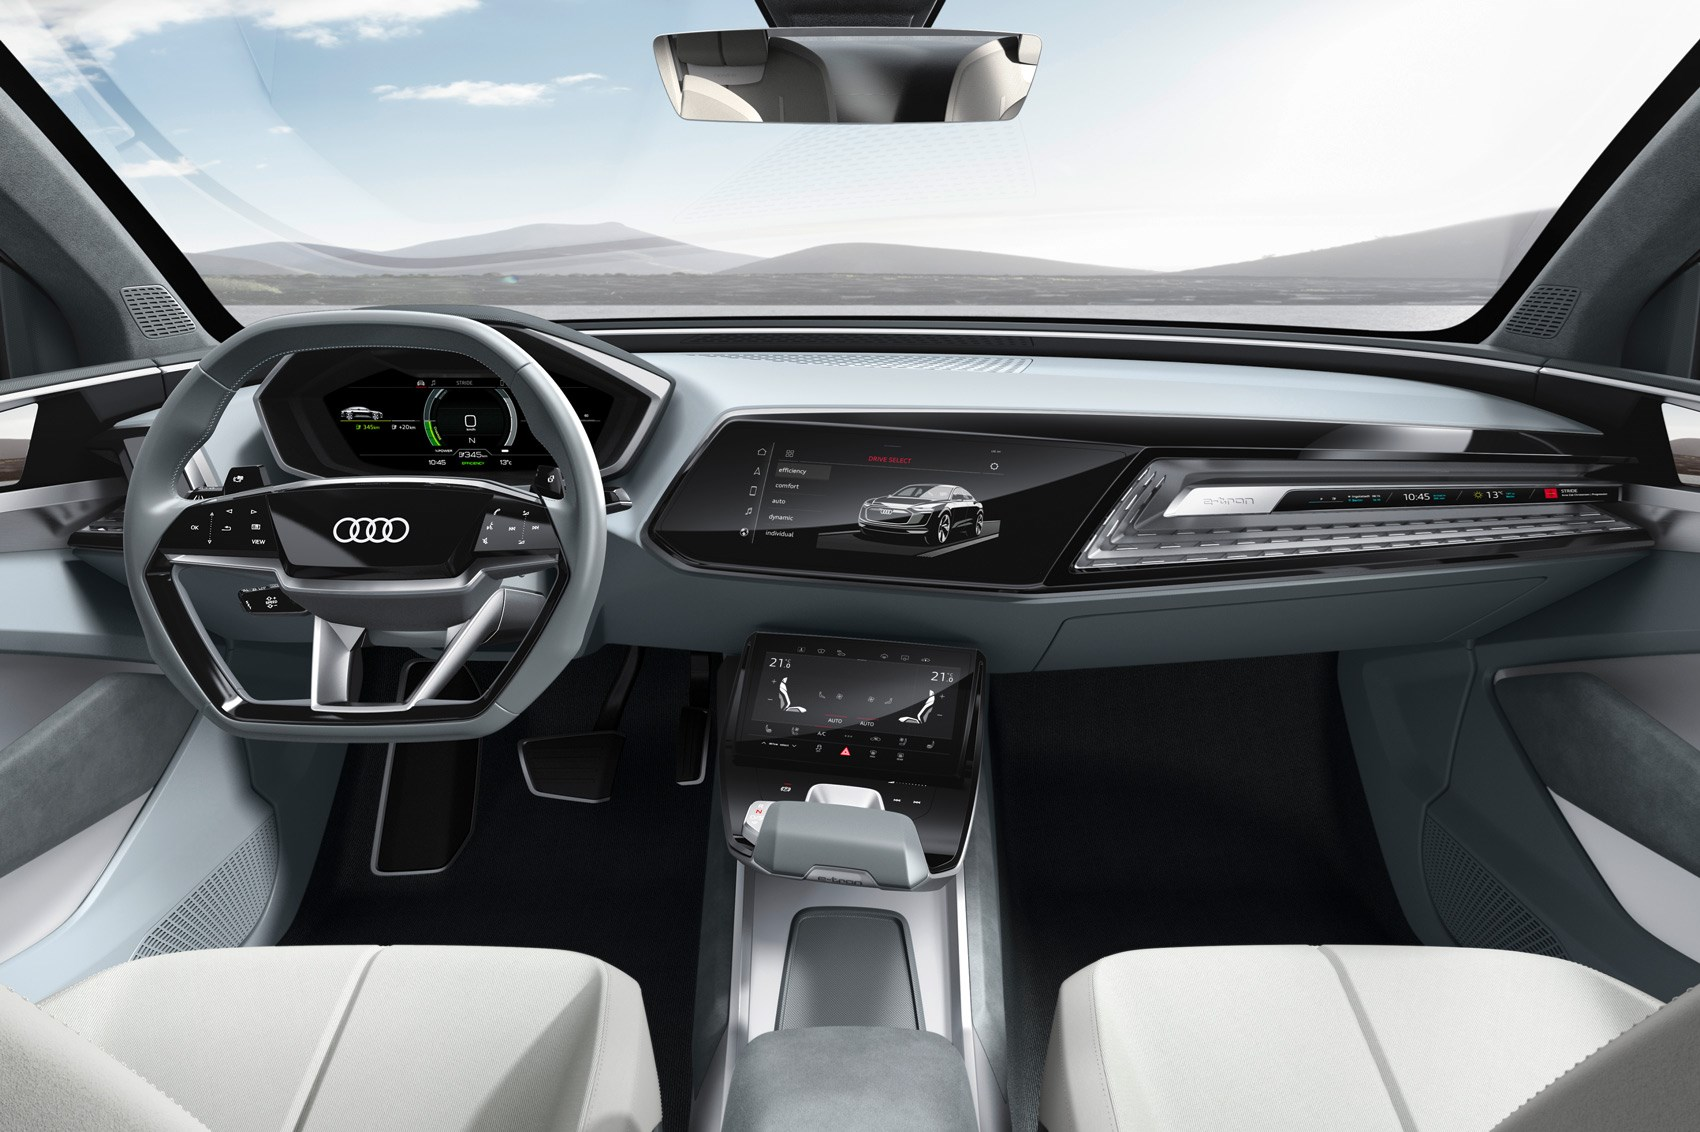 Unveiled In Shanghai The New Audi E Tron Sportback Concept Car